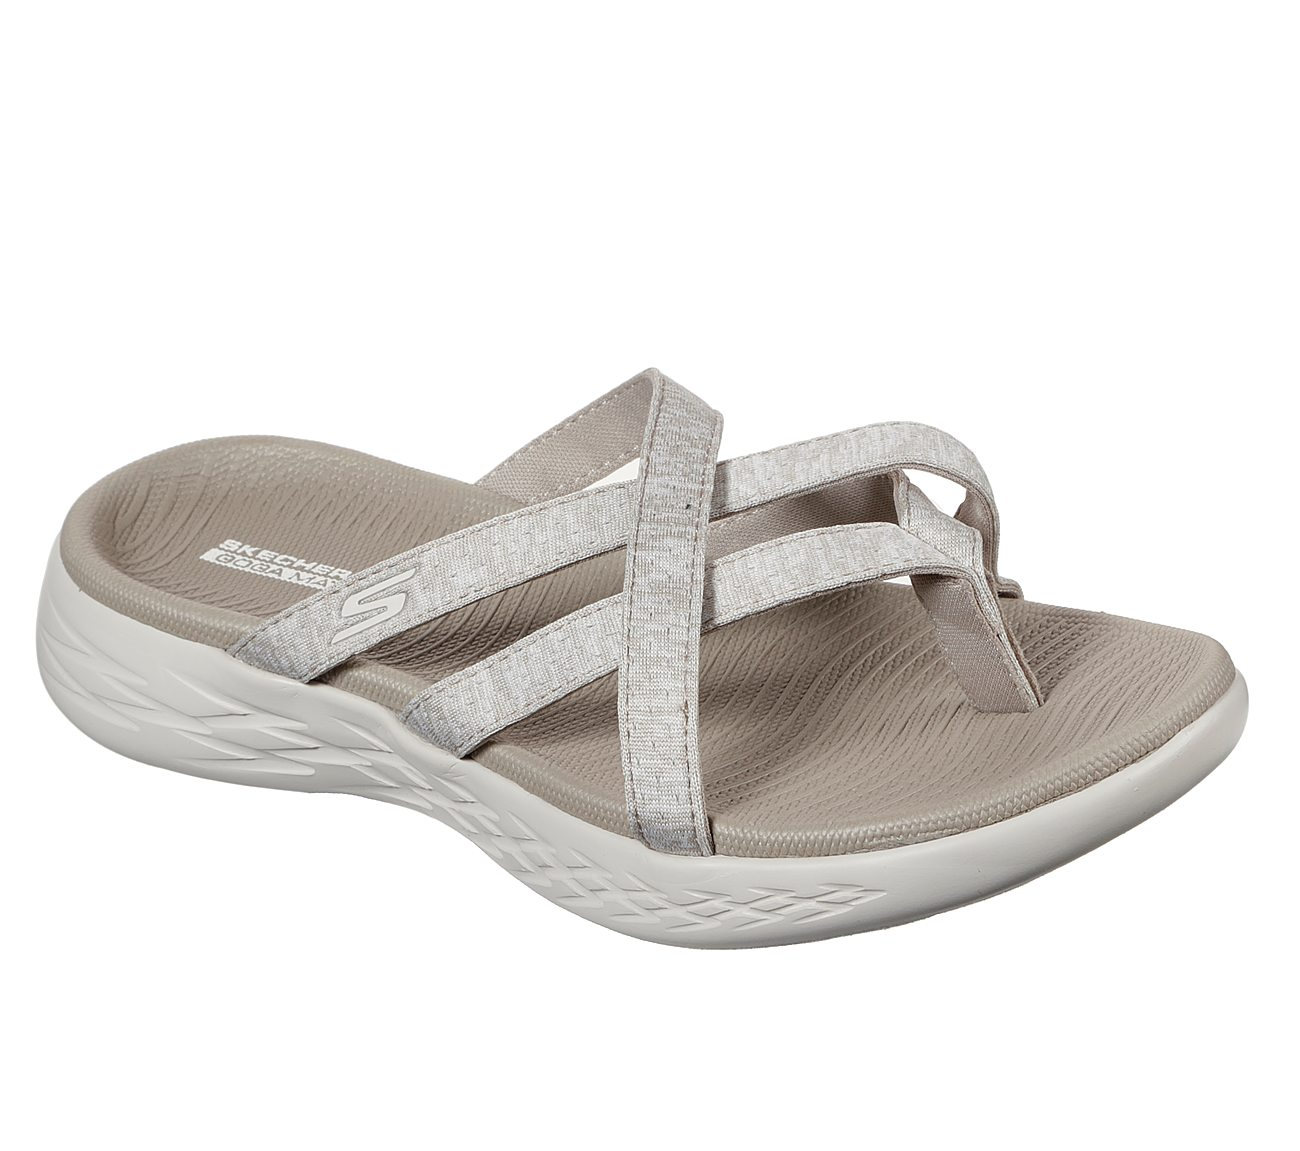 Skechers On the GO 600 - Dainty